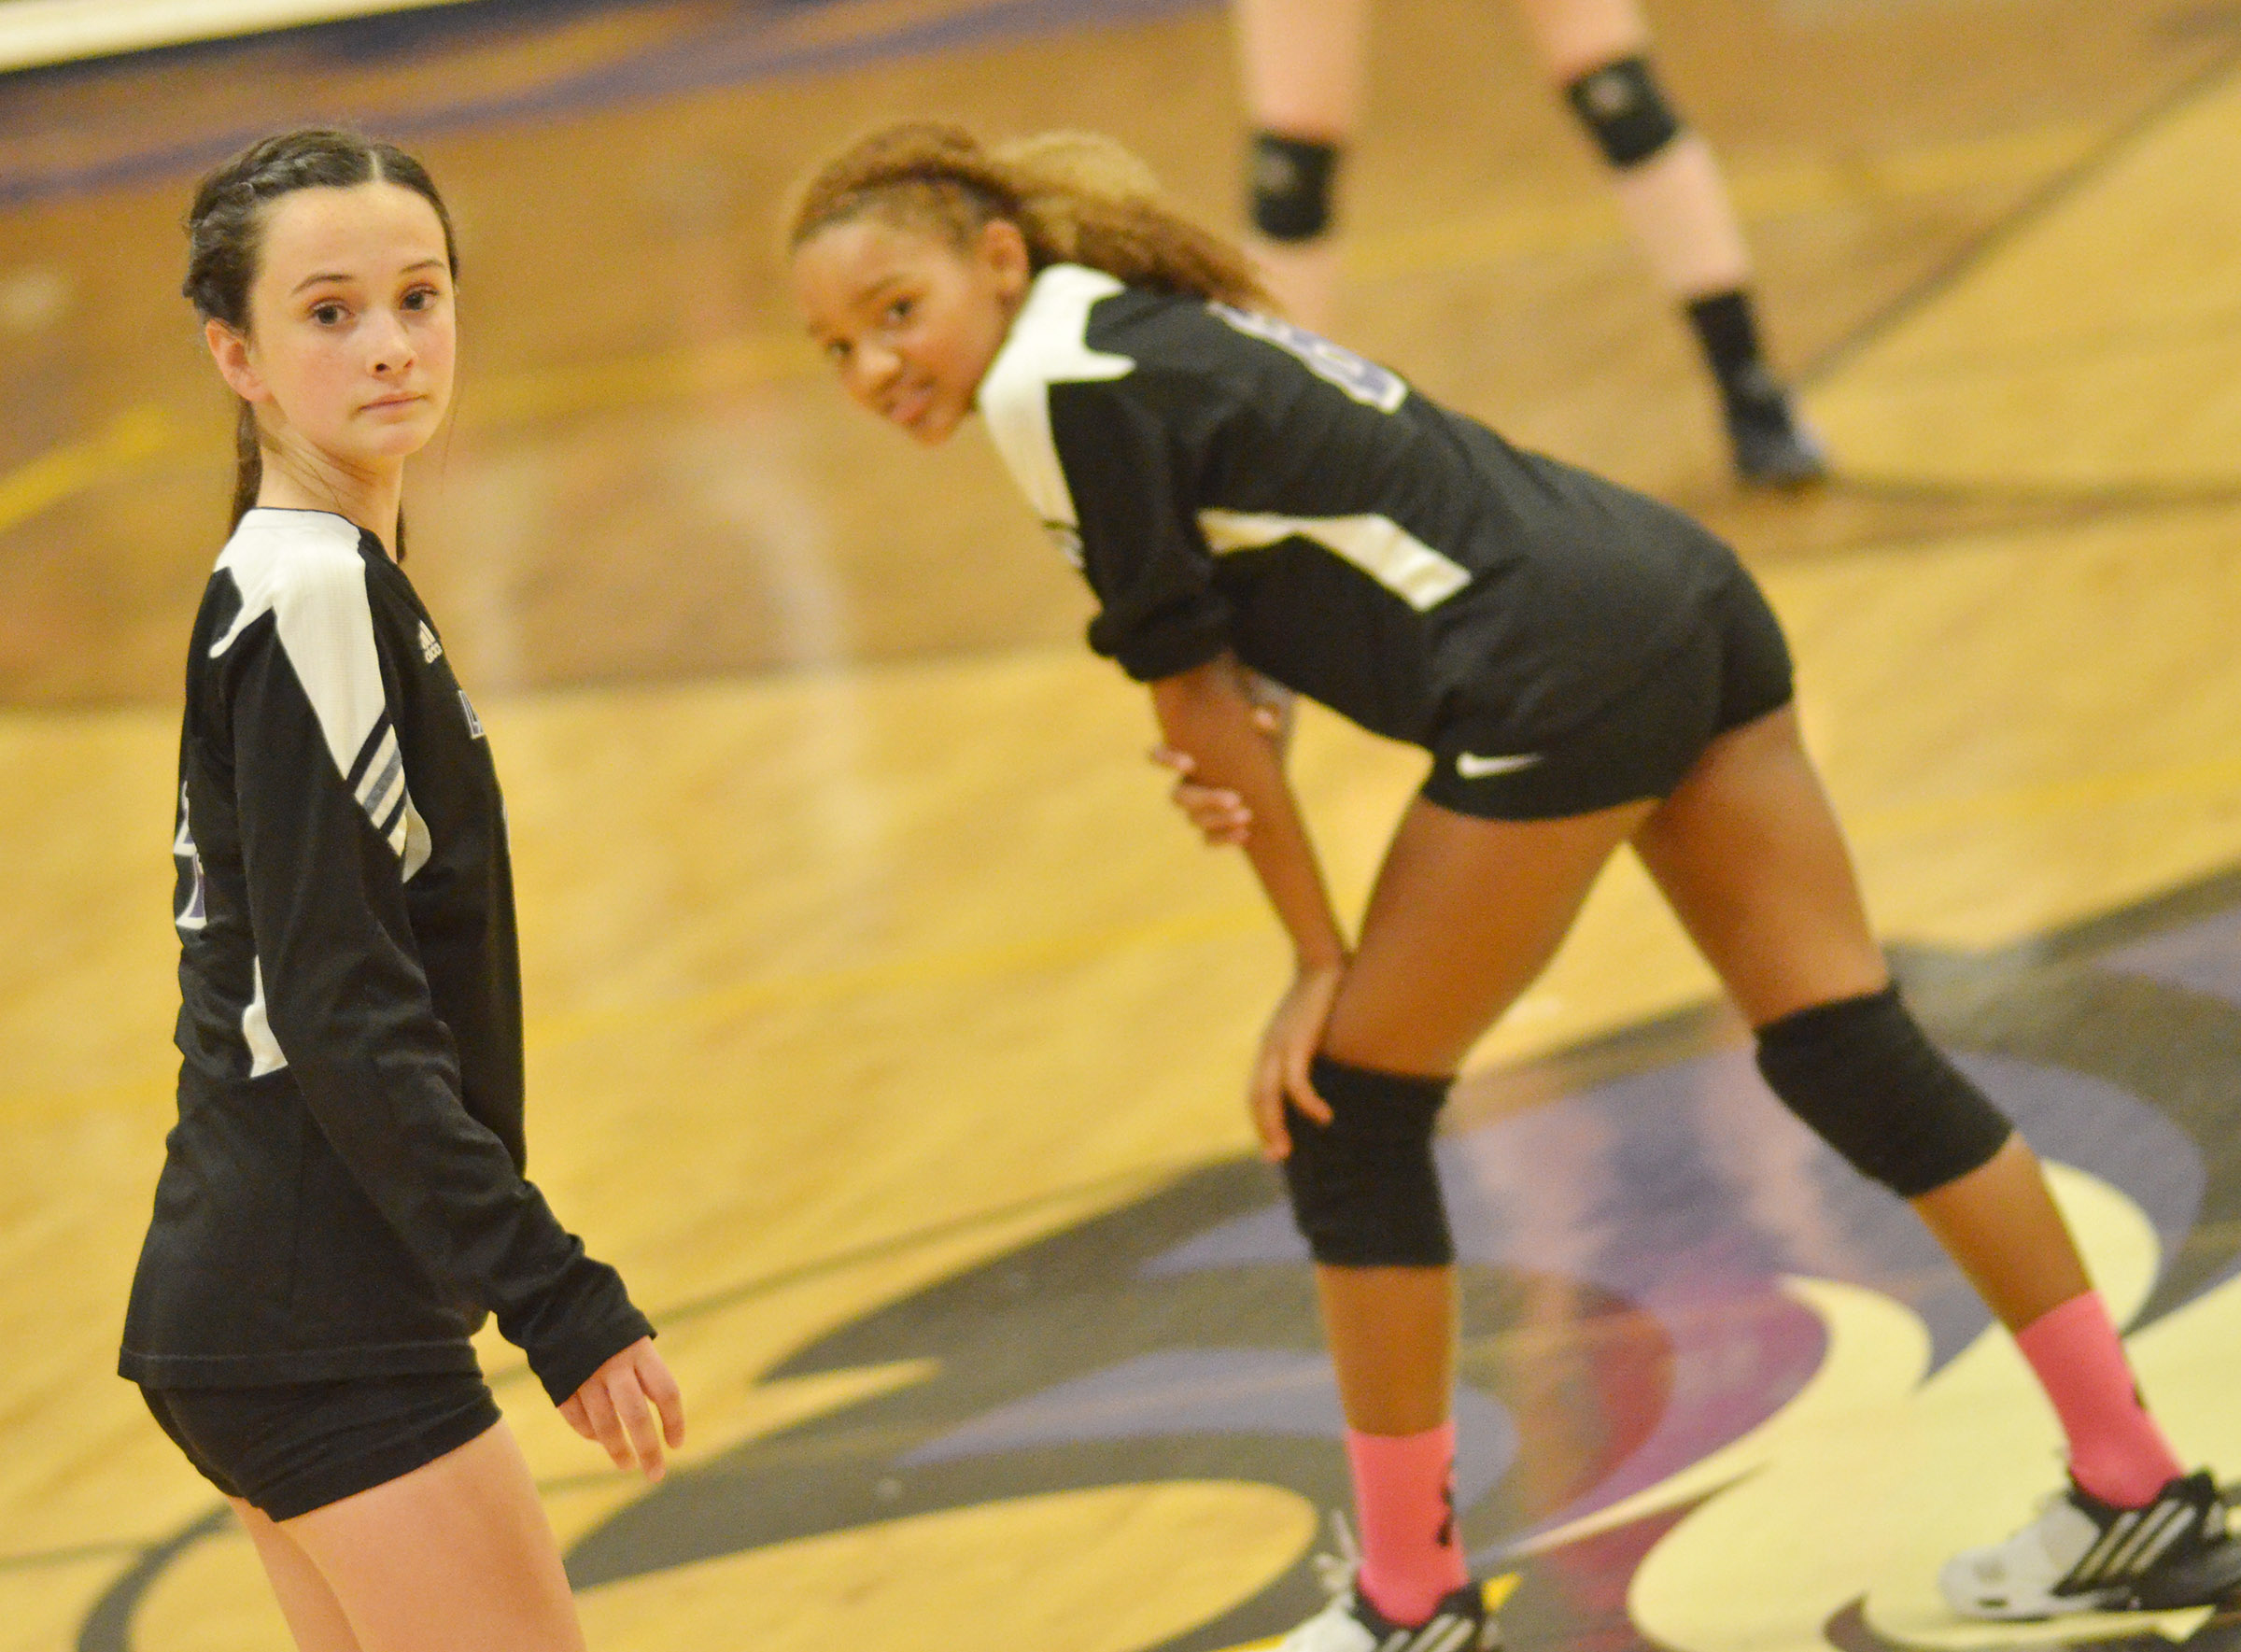 Campbellsville Middle School eighth-grader Sara Adkins, at left, and classmate Alexis Thomas wait for the serve.